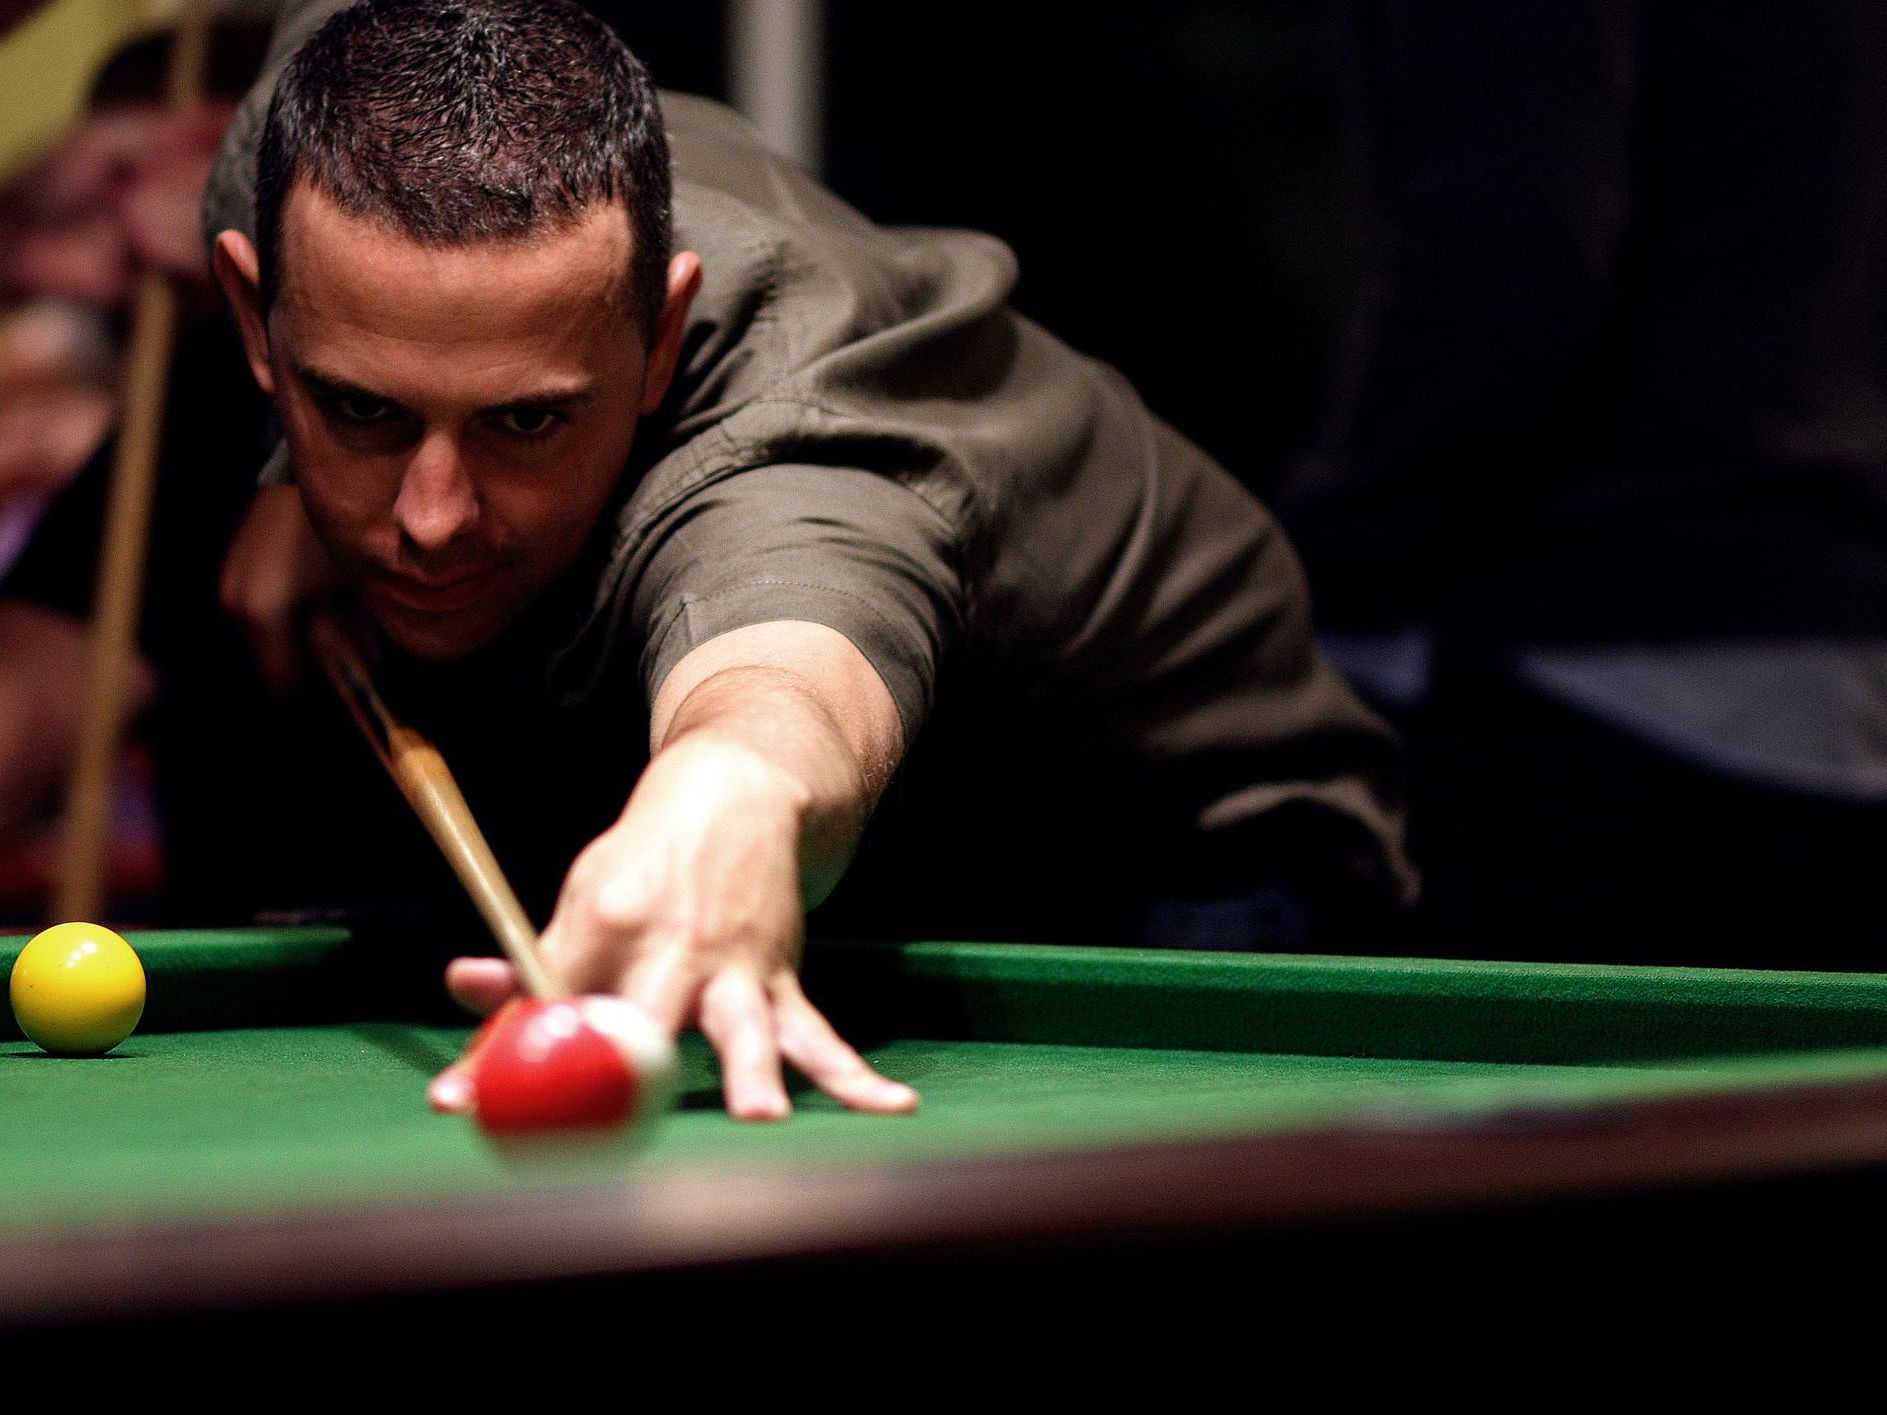 How To Play Pool Like The Pros Tips And Techniques